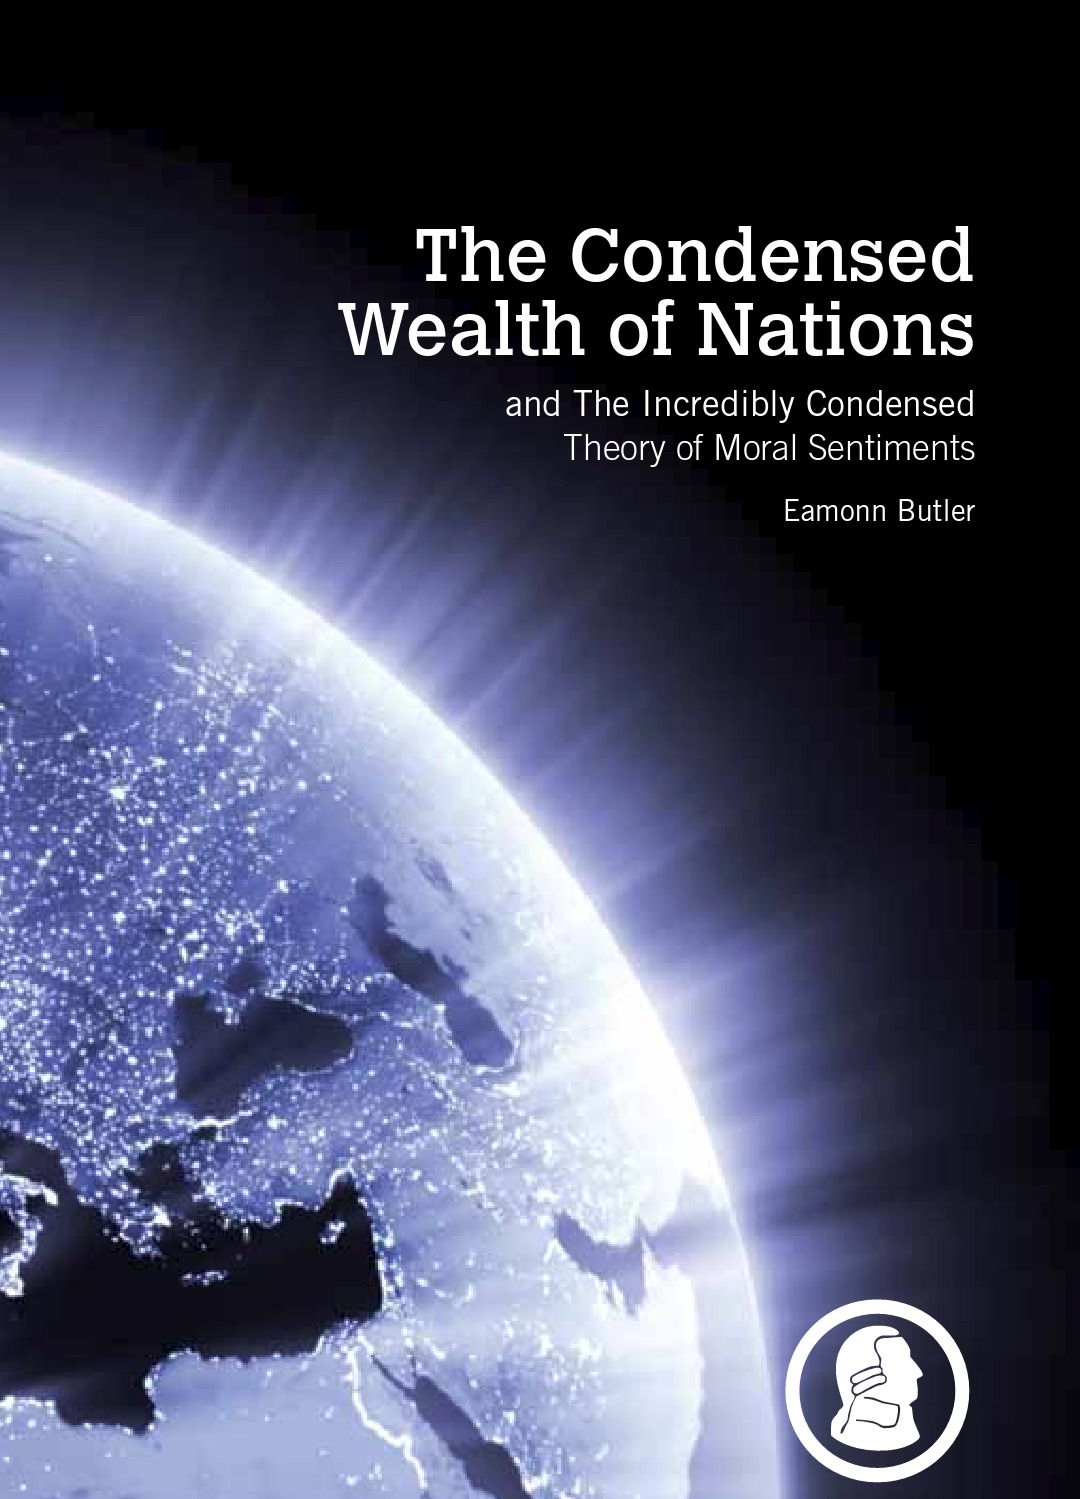 The Condensed Wealth of Nations Eamonn Butler